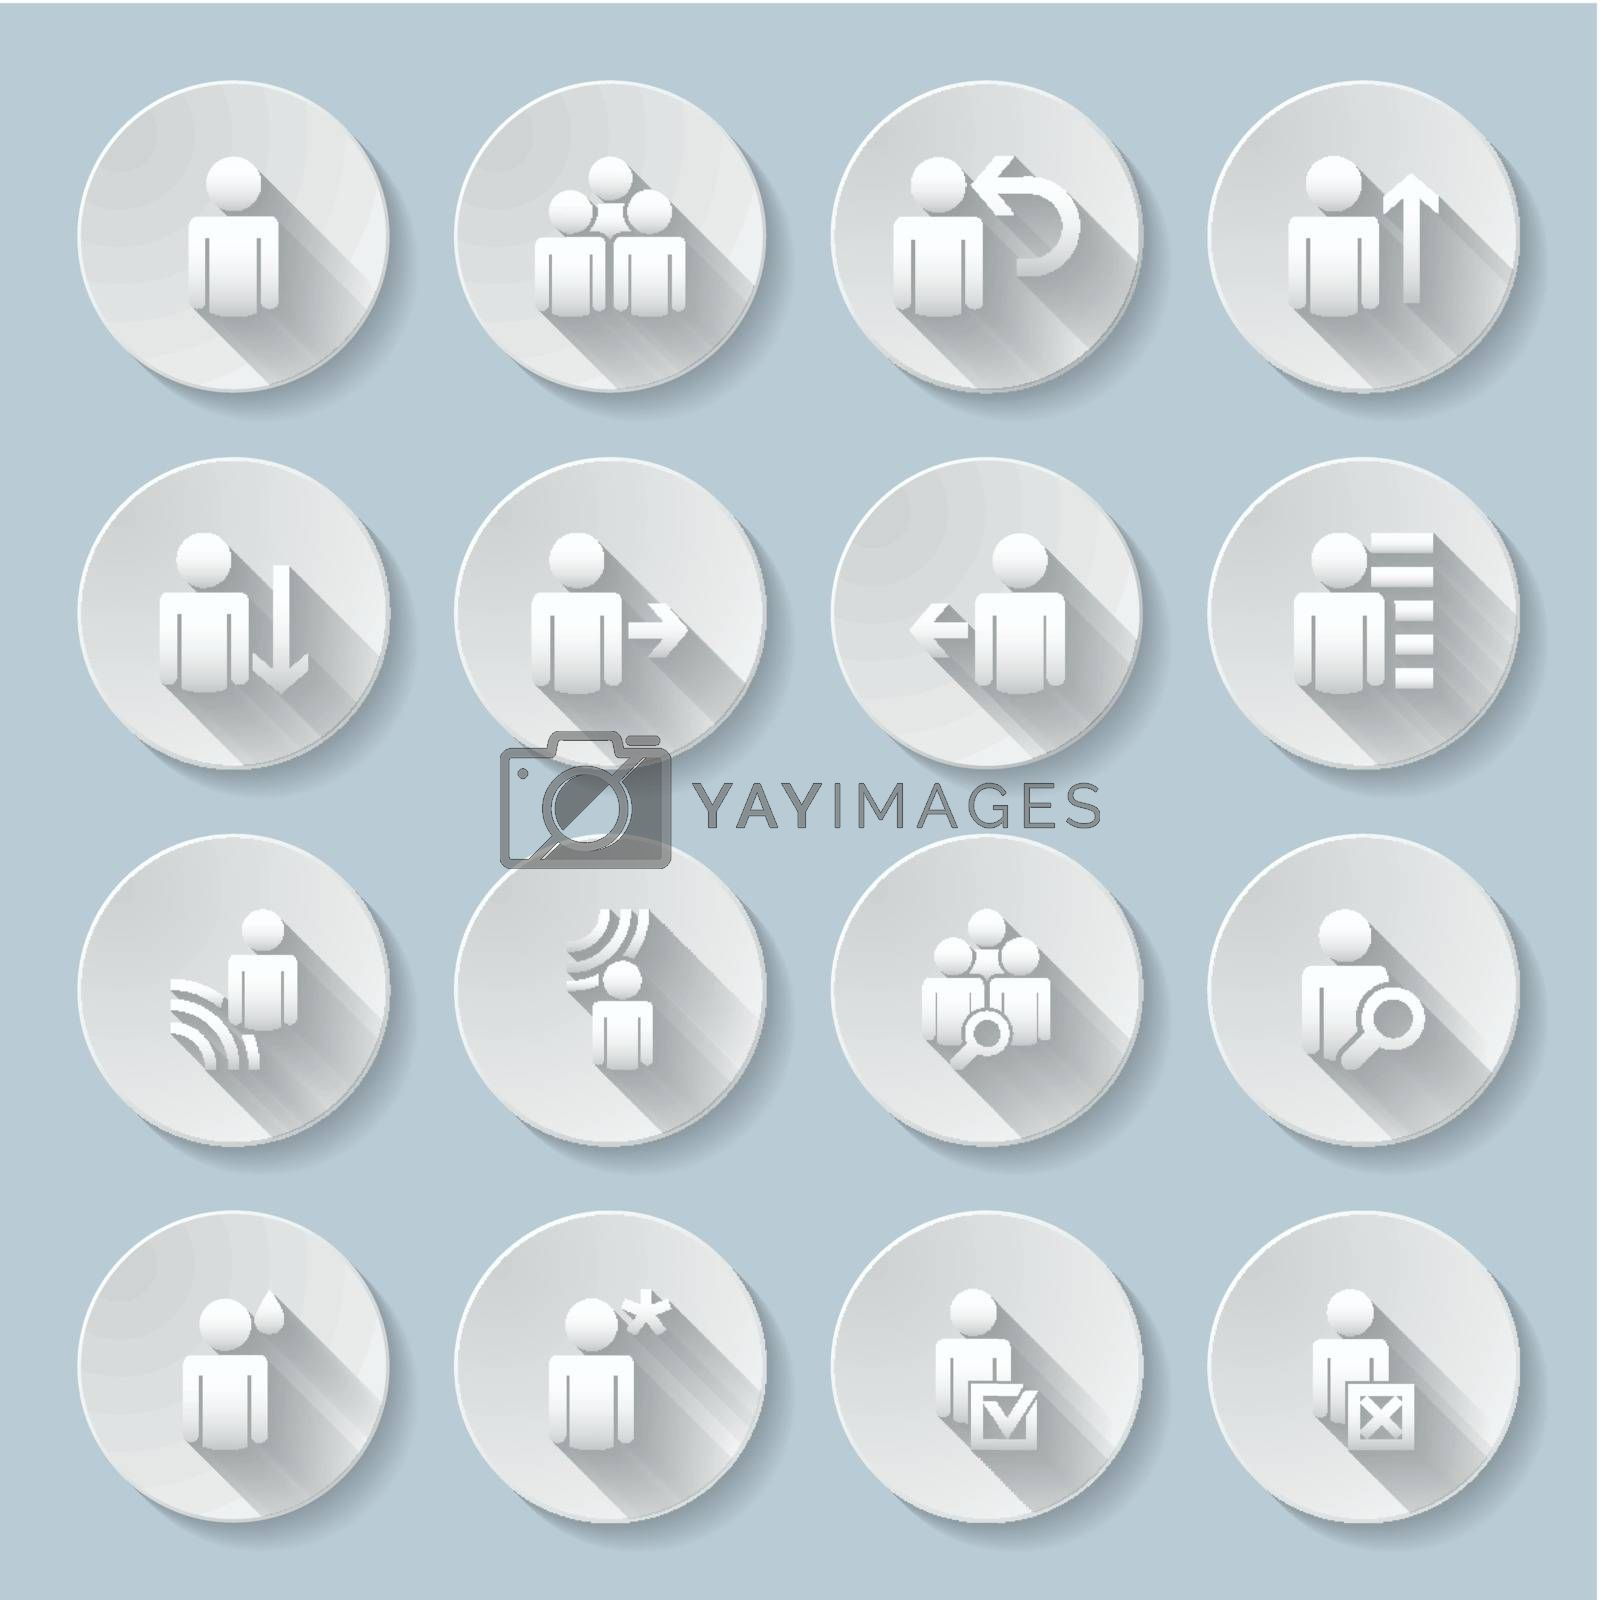 Set of flat round  icons  with functions  on  gray background